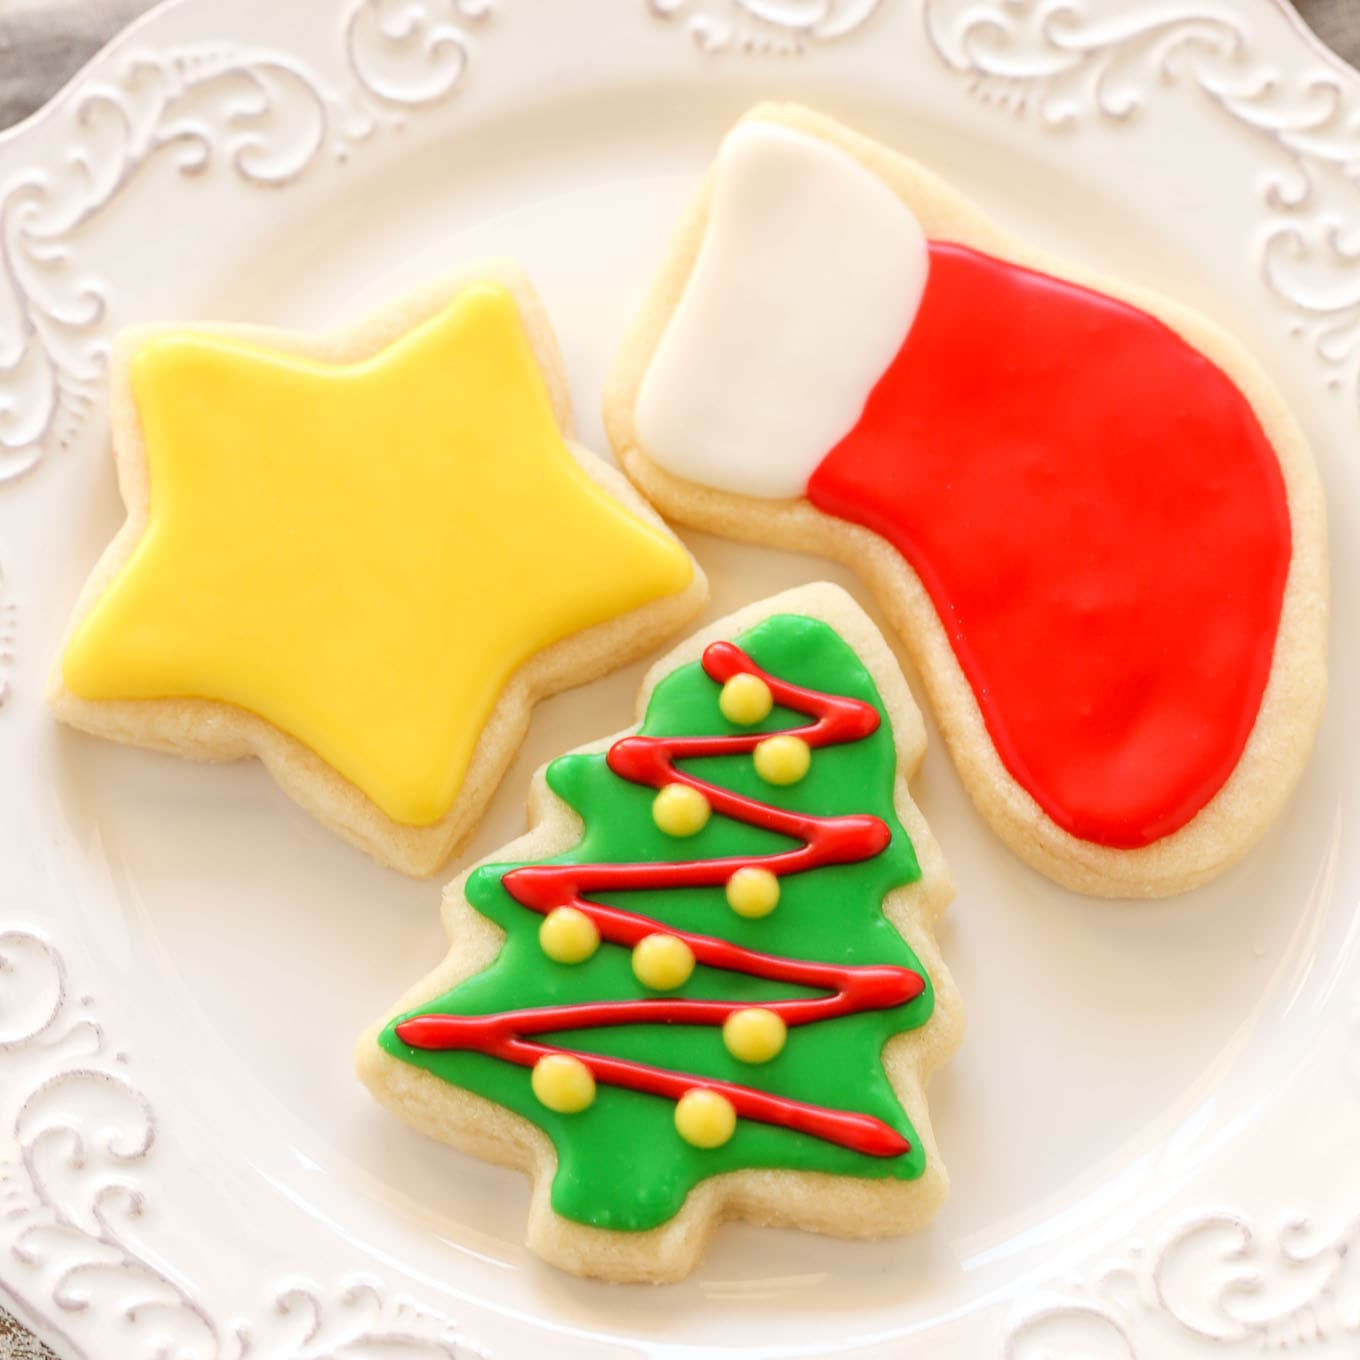 Soft Sugar Cookie Recipes Christmas: Soft Christmas Cut-Out Sugar Cookies